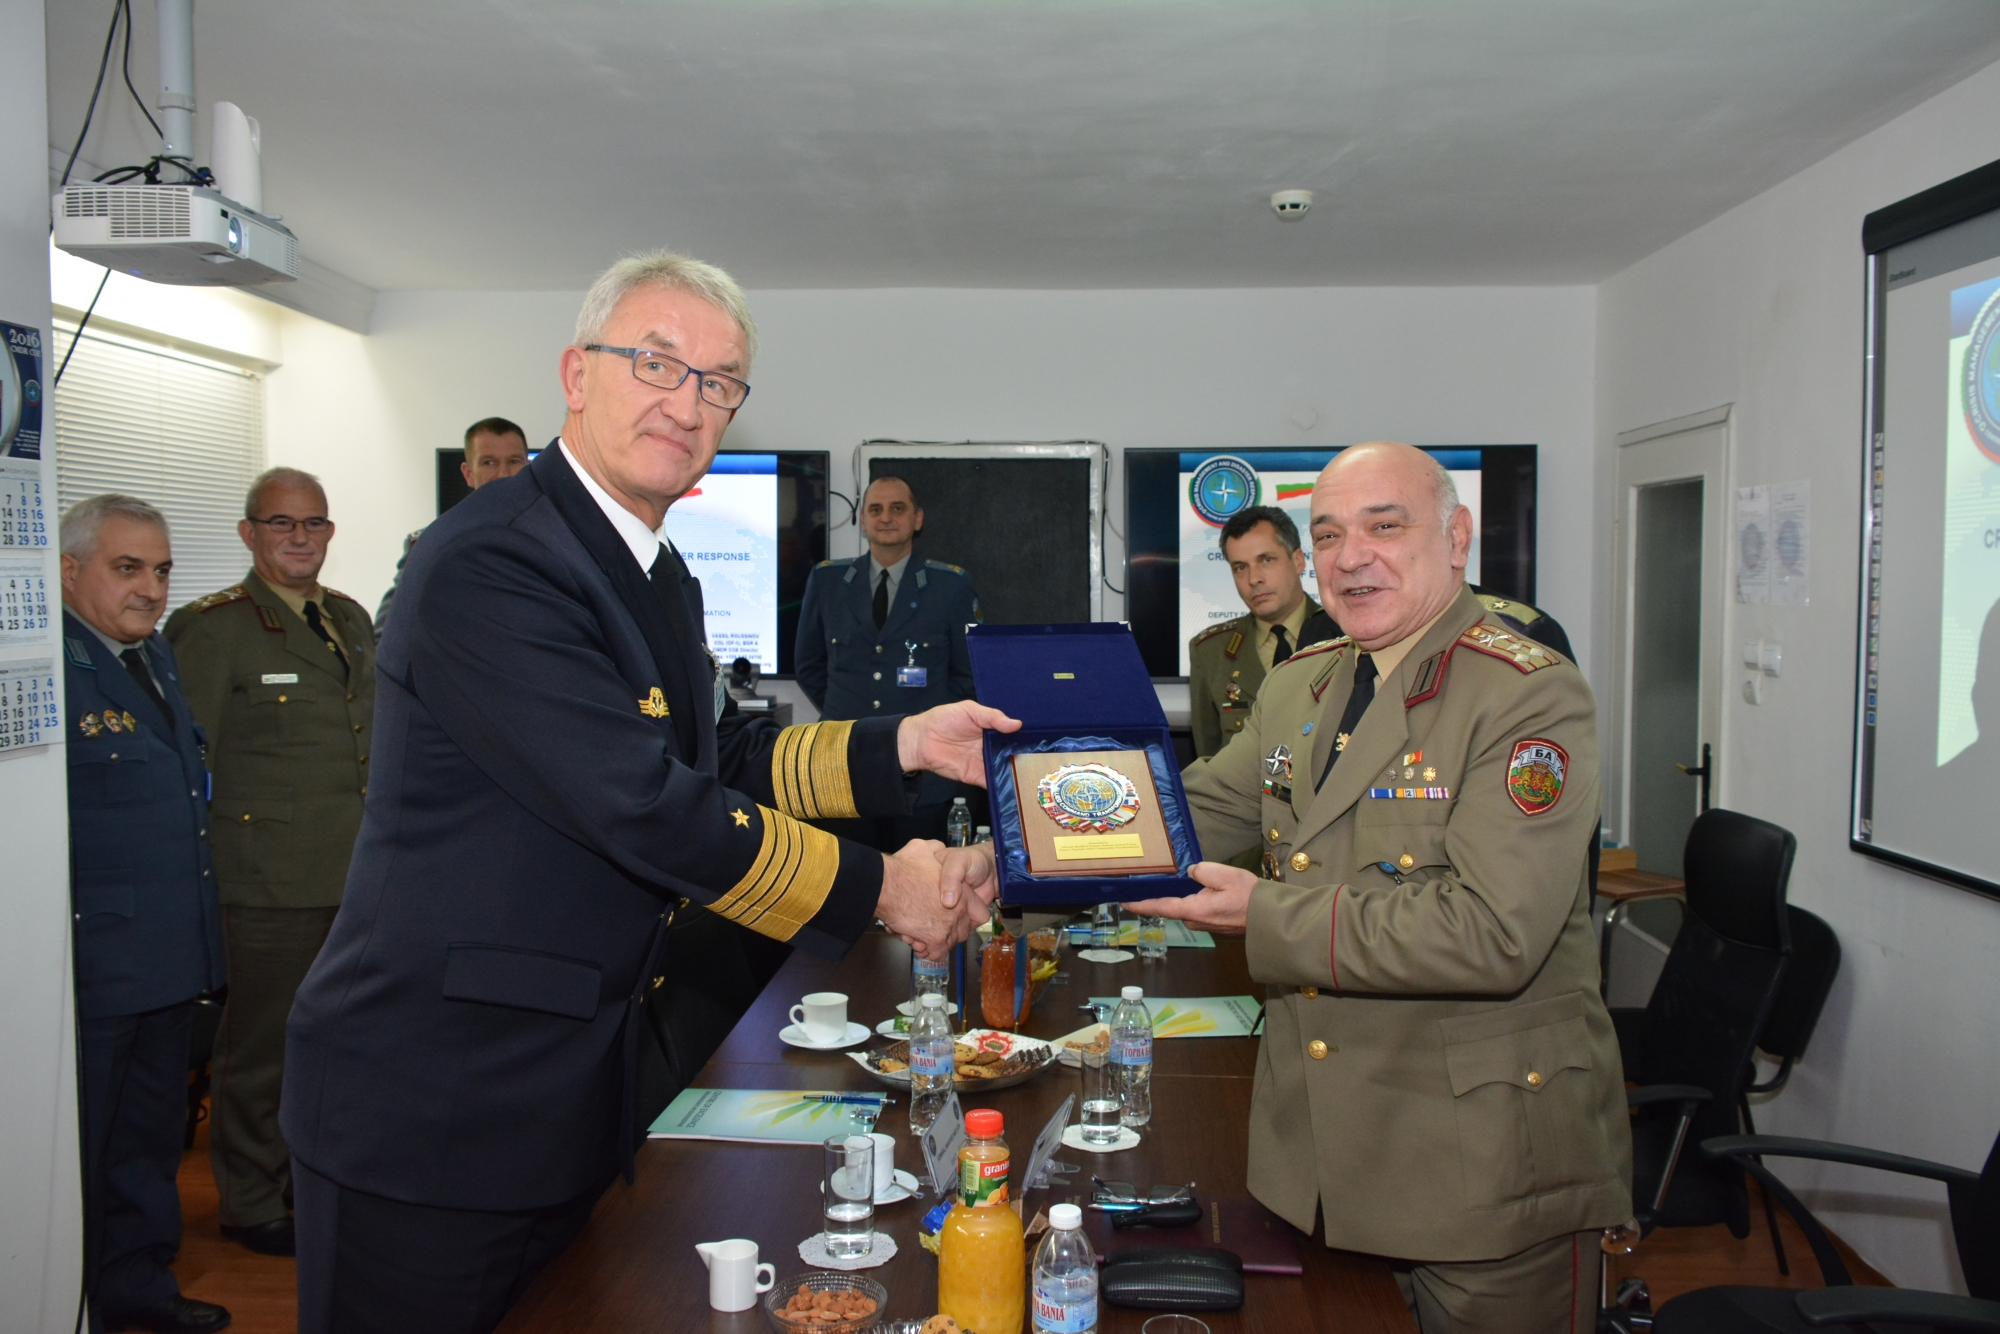 CMDR COE Welcomes Deputy Supreme Allied Commander Transformation (DSACT) Admiral Manfred Nielson